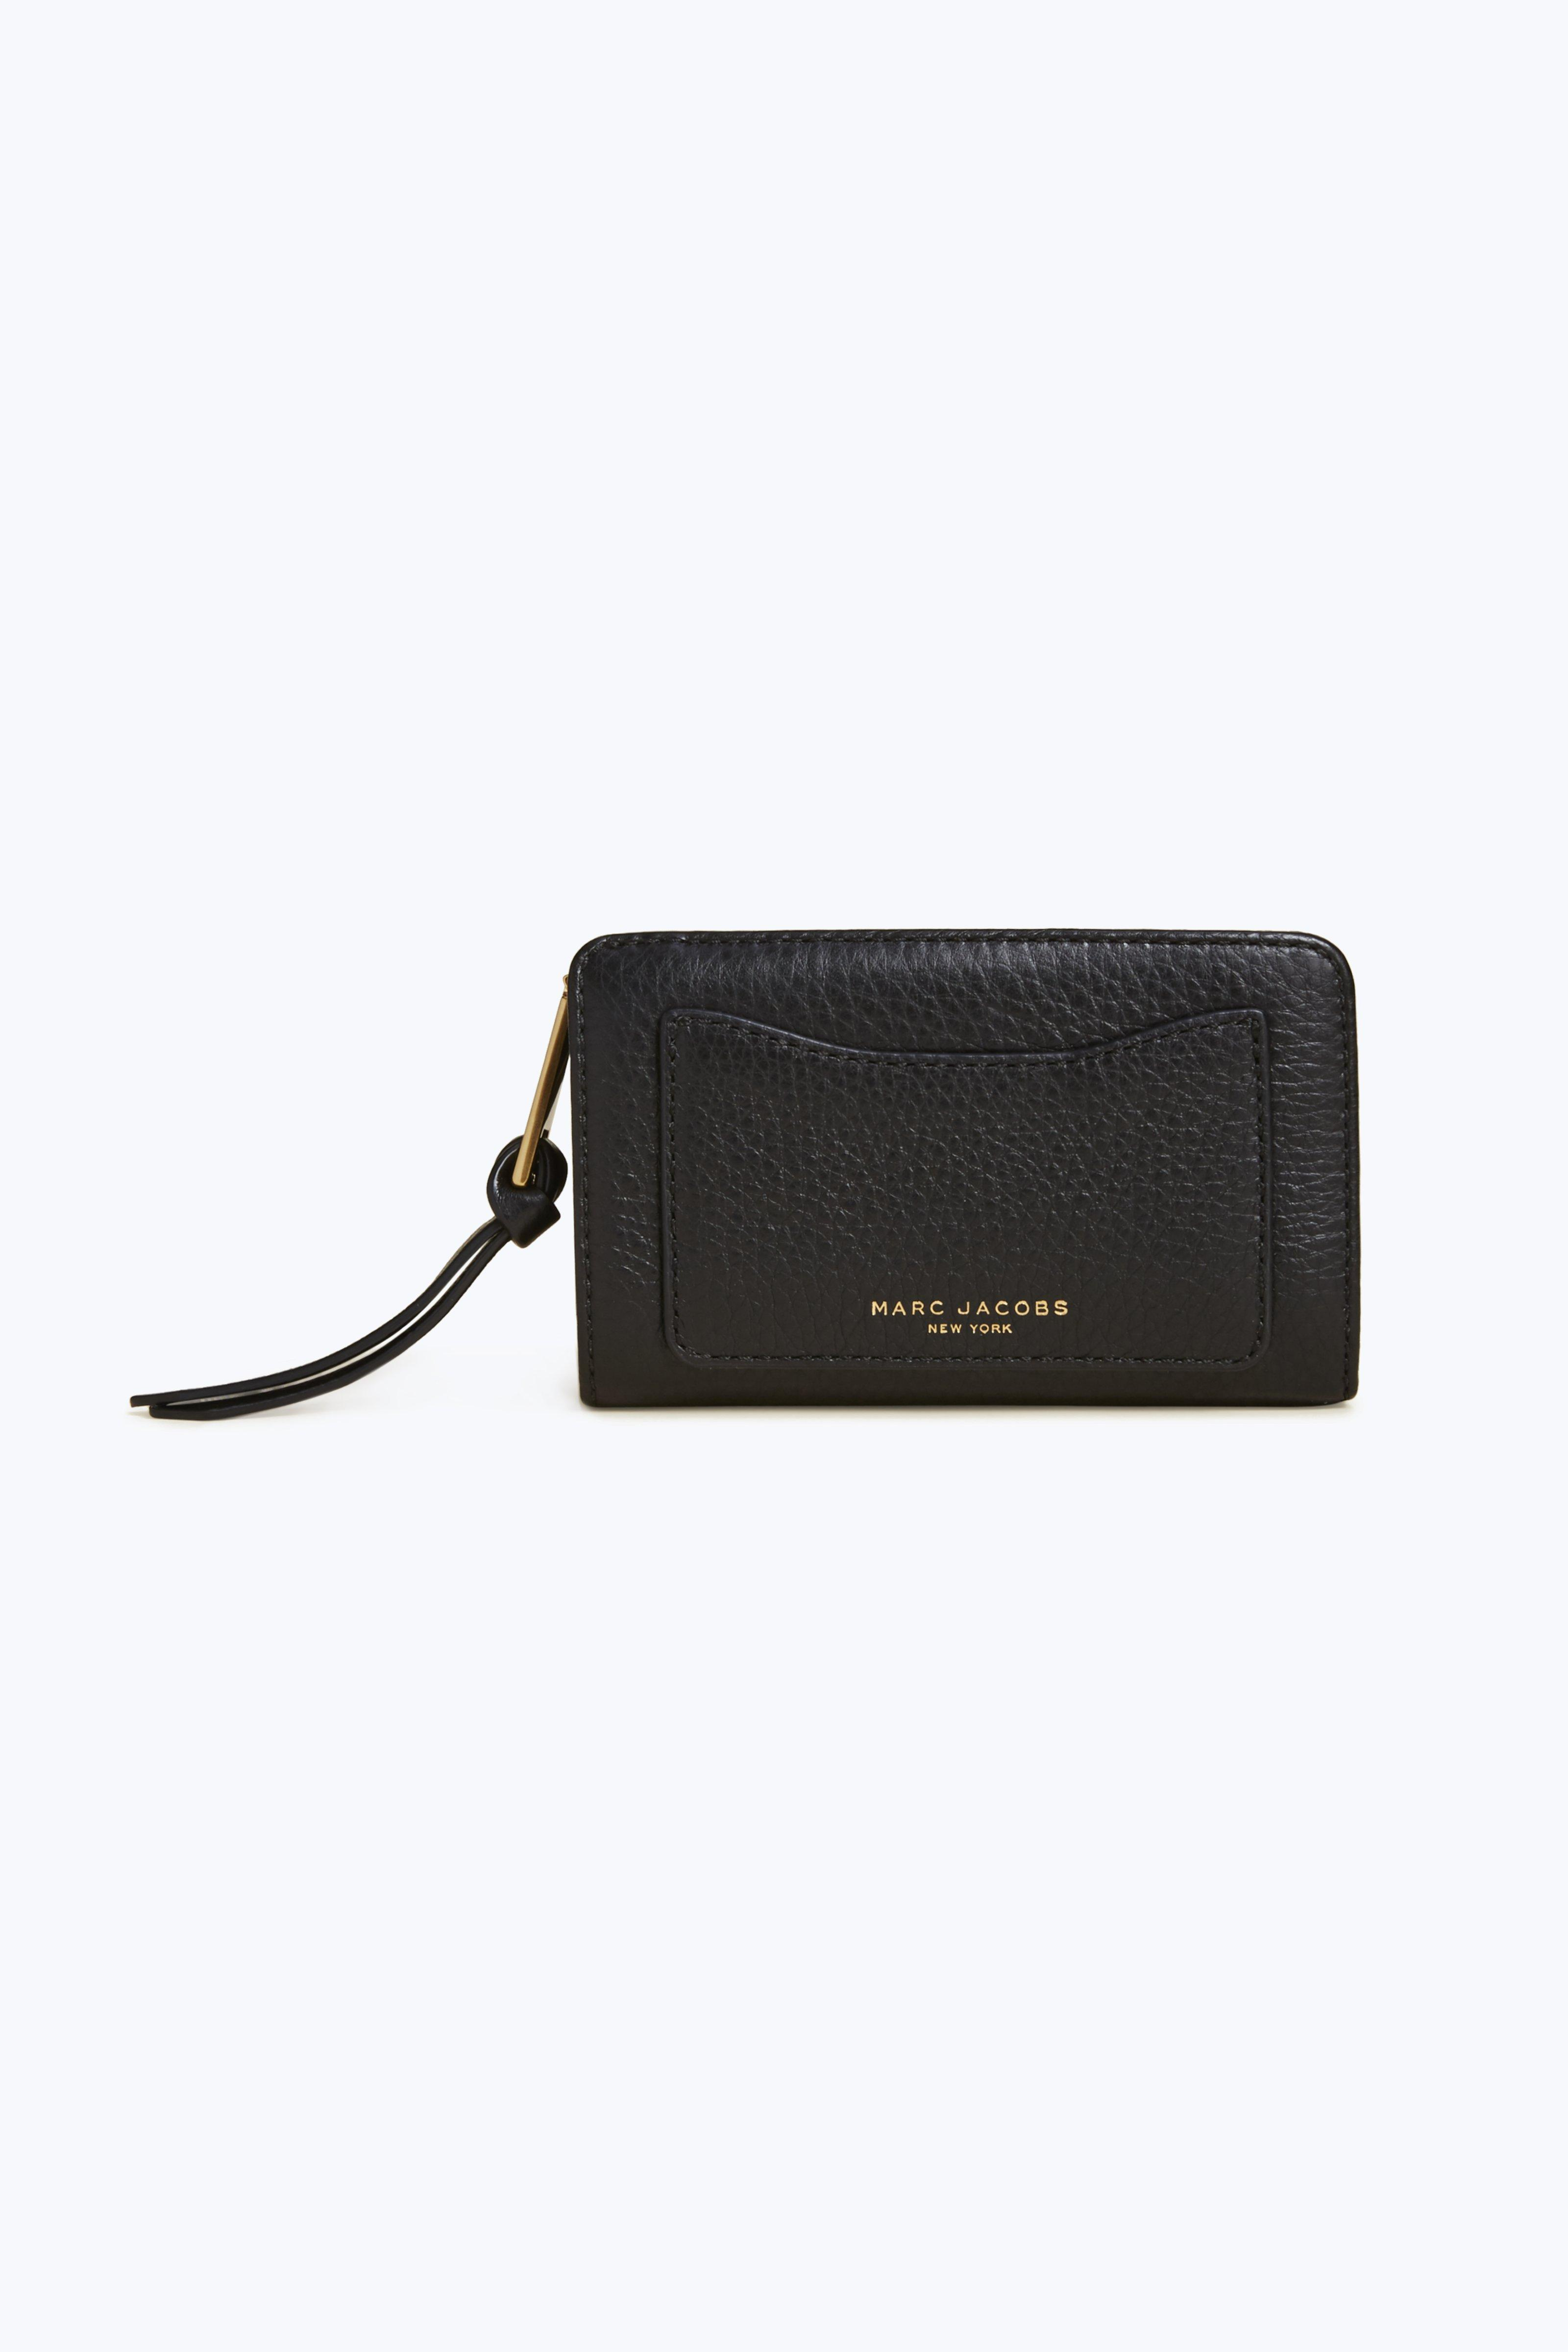 Marc Jacobs Recruit Compact Wallet In Black